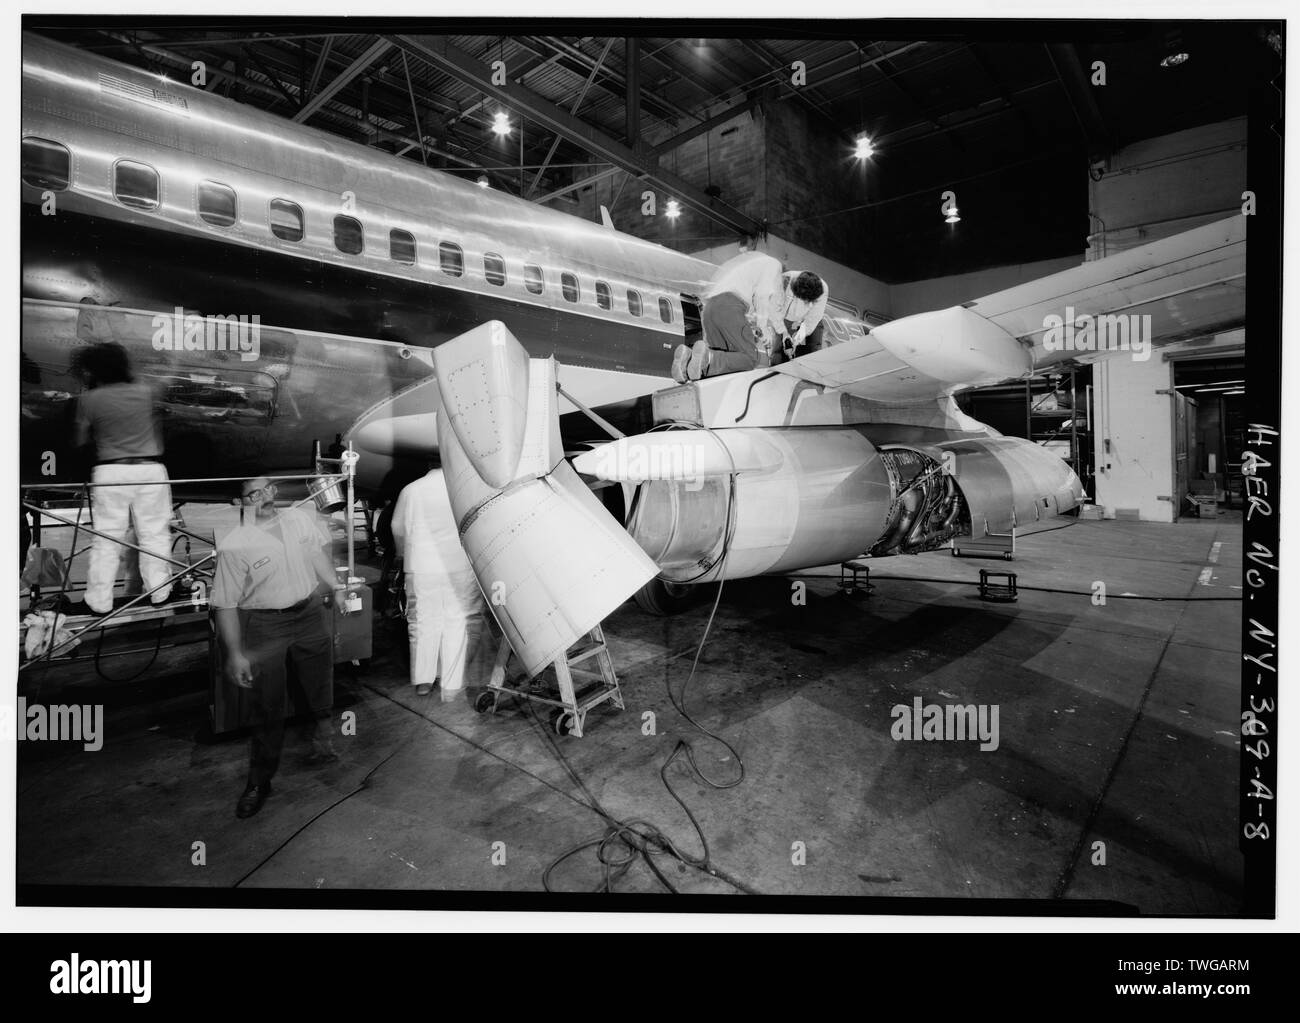 REAR DETAIL OF RIGHT ENGINE AND WING. THRUST REVERSER REMAINS OPEN. MECHANICS JONI BAINE (R) AND BILL THEODORE(L) OPEN FLAP CARRIAGE ACCESS WITH AN IMPACT GUN. THEY WILL CHECK TRANSMISSION FLUID AND OIL THE JACK SCREW. AT FAR LEFT UTILITY MECHANICS BEGIN BODY POLISHING. - Greater Buffalo International Airport, Maintenance Hangar, Buffalo, Erie County, NY - Stock Image